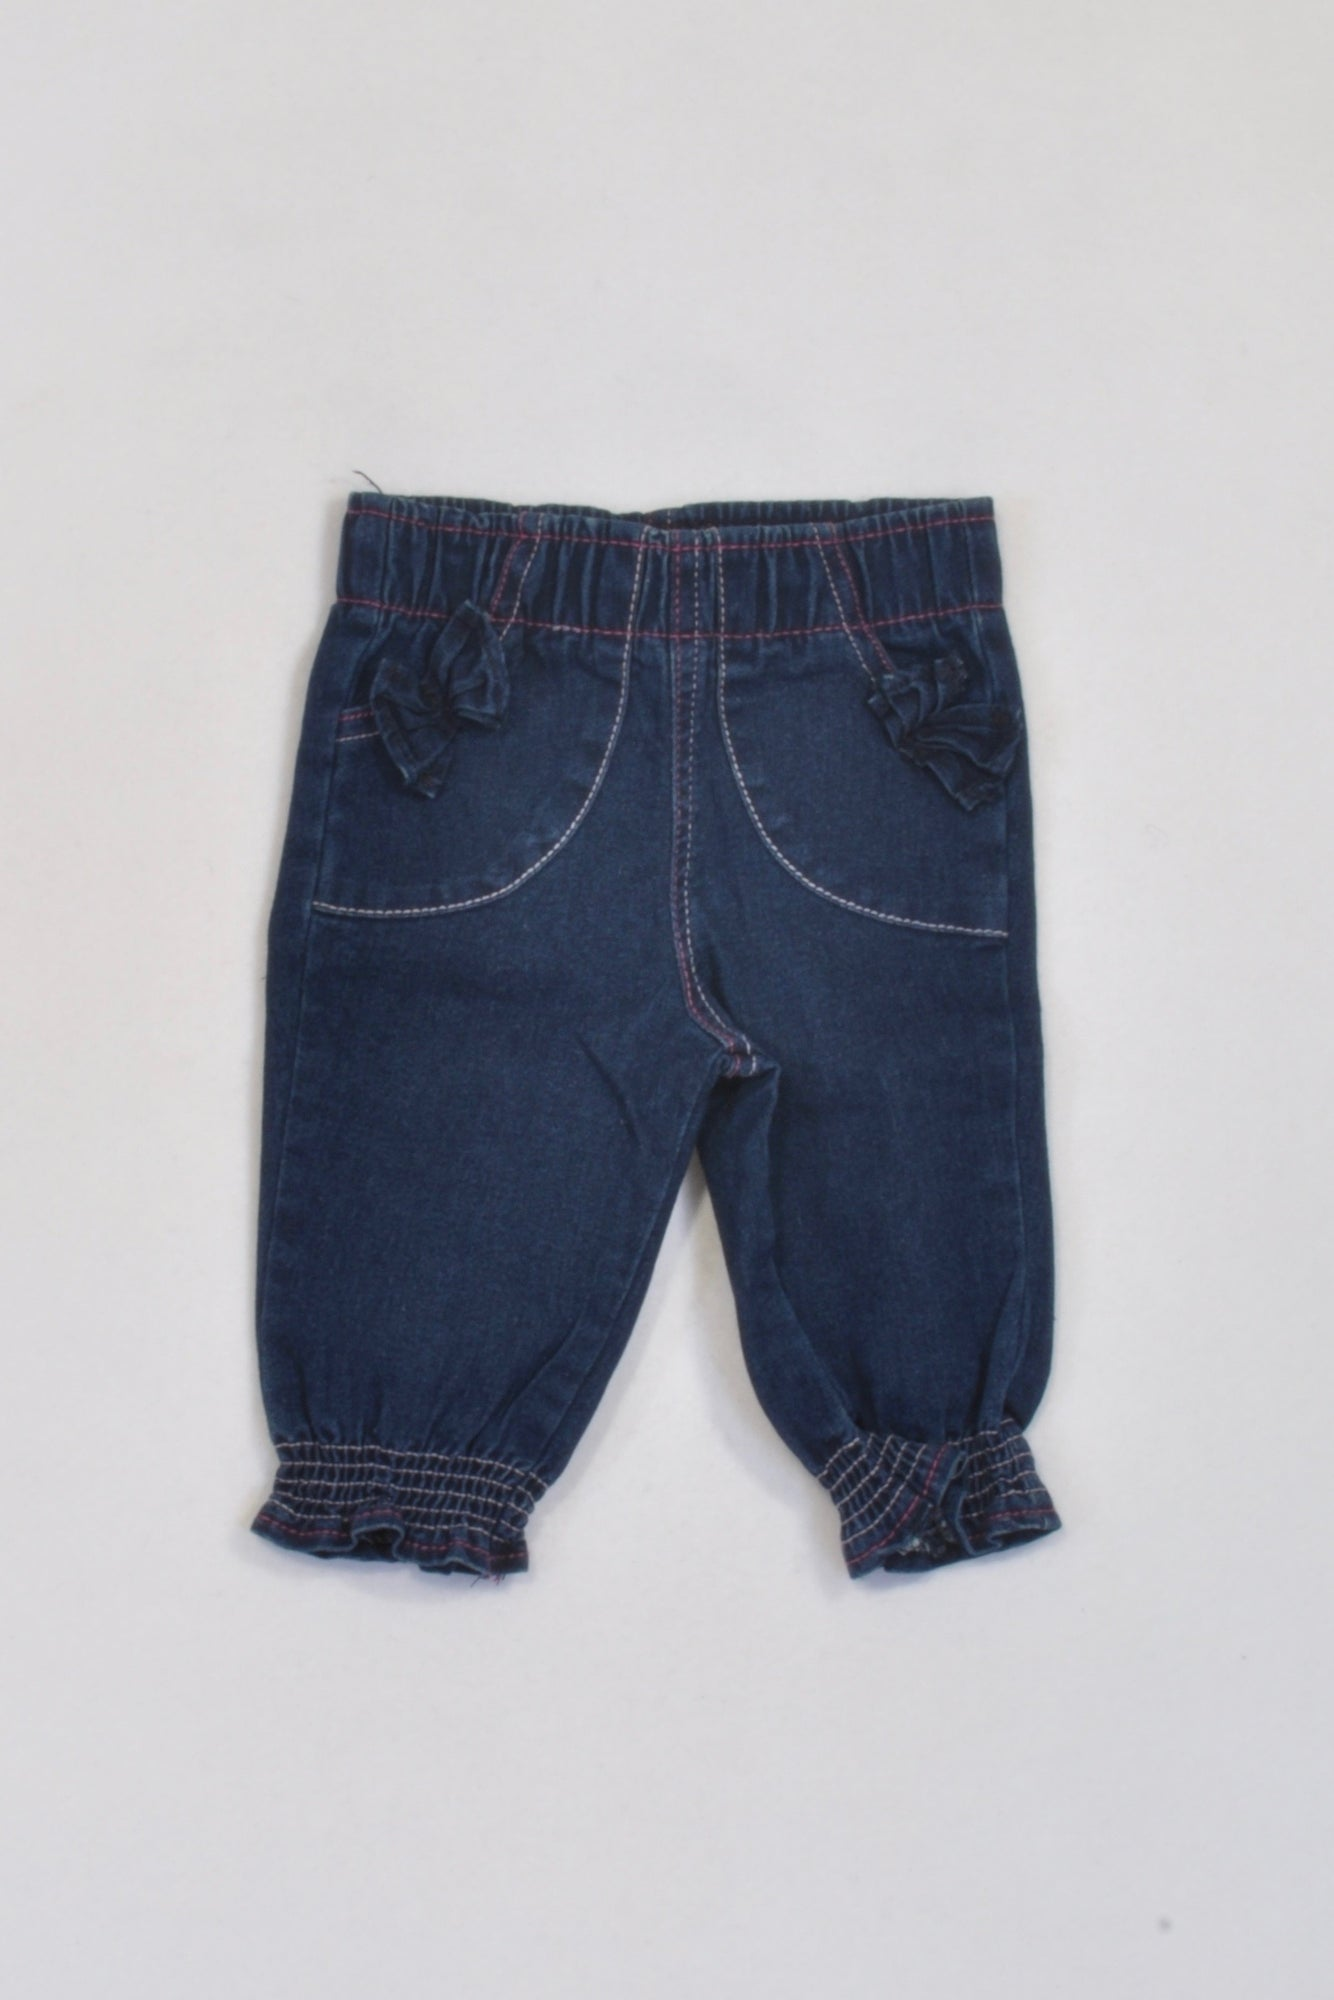 Next Jeans 3-6 Months Dark Grey Worn Once Baby & Toddler Clothing